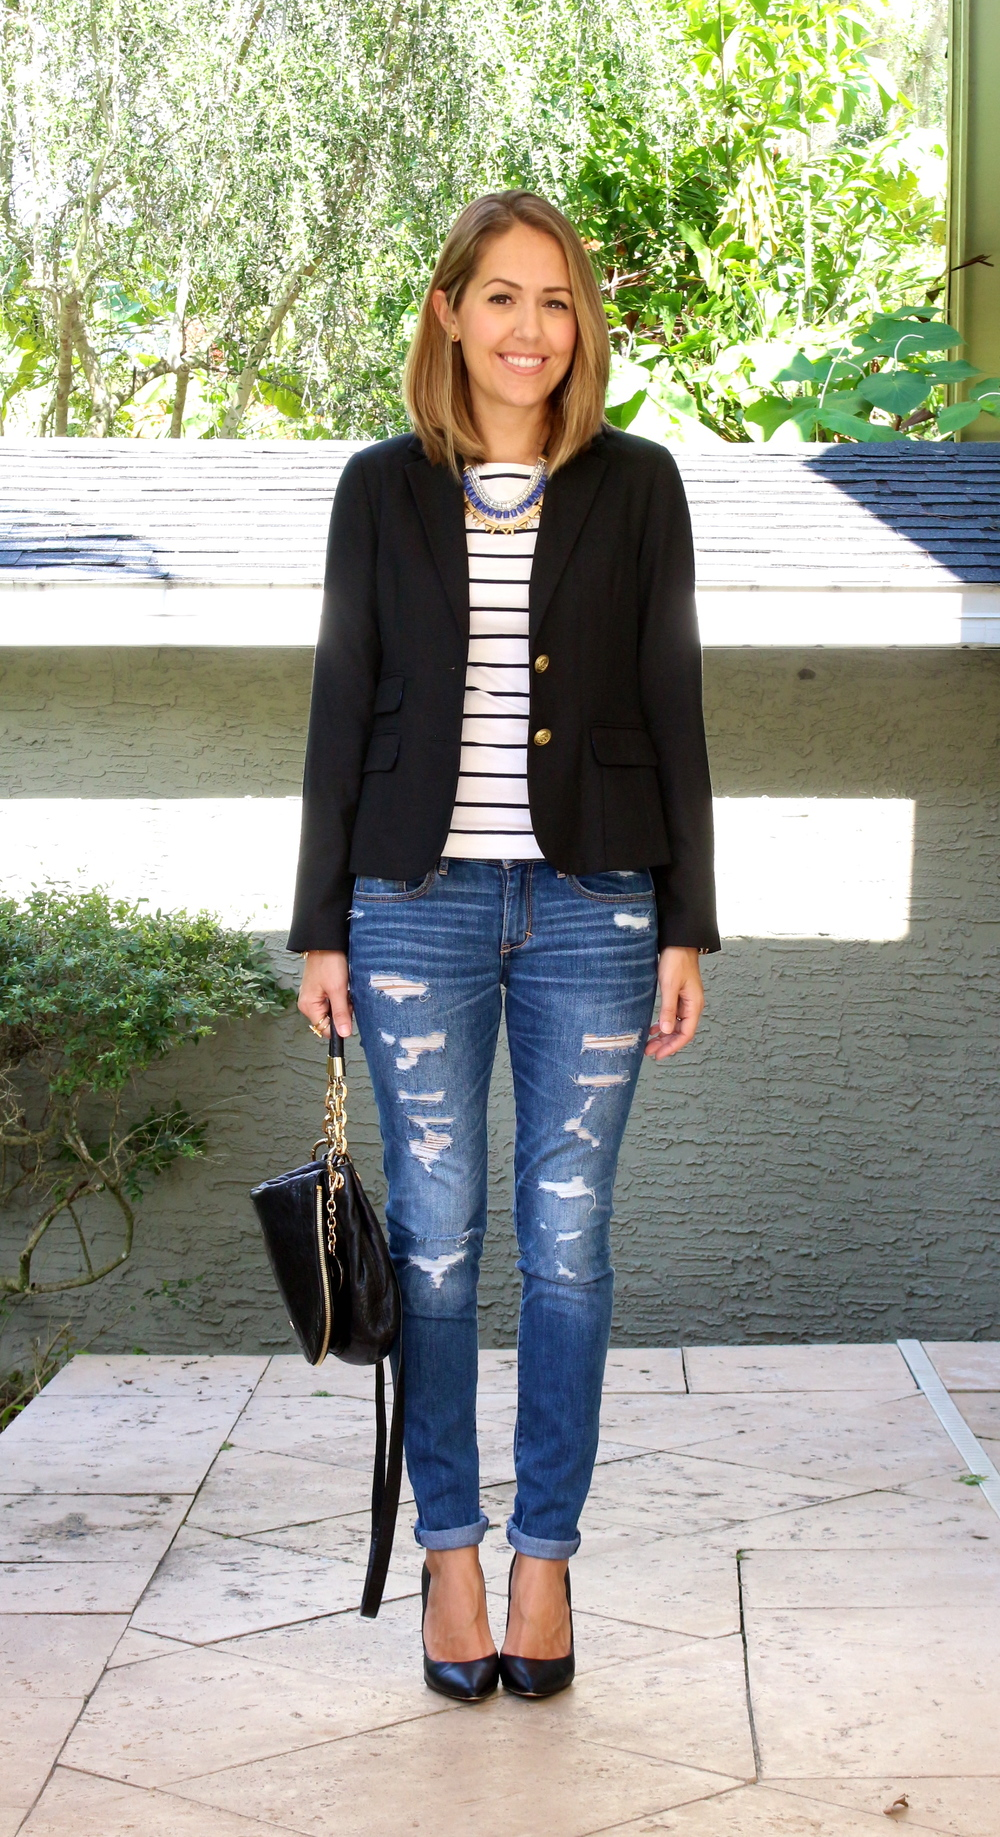 Black blazer, striped tee, distressed jeans